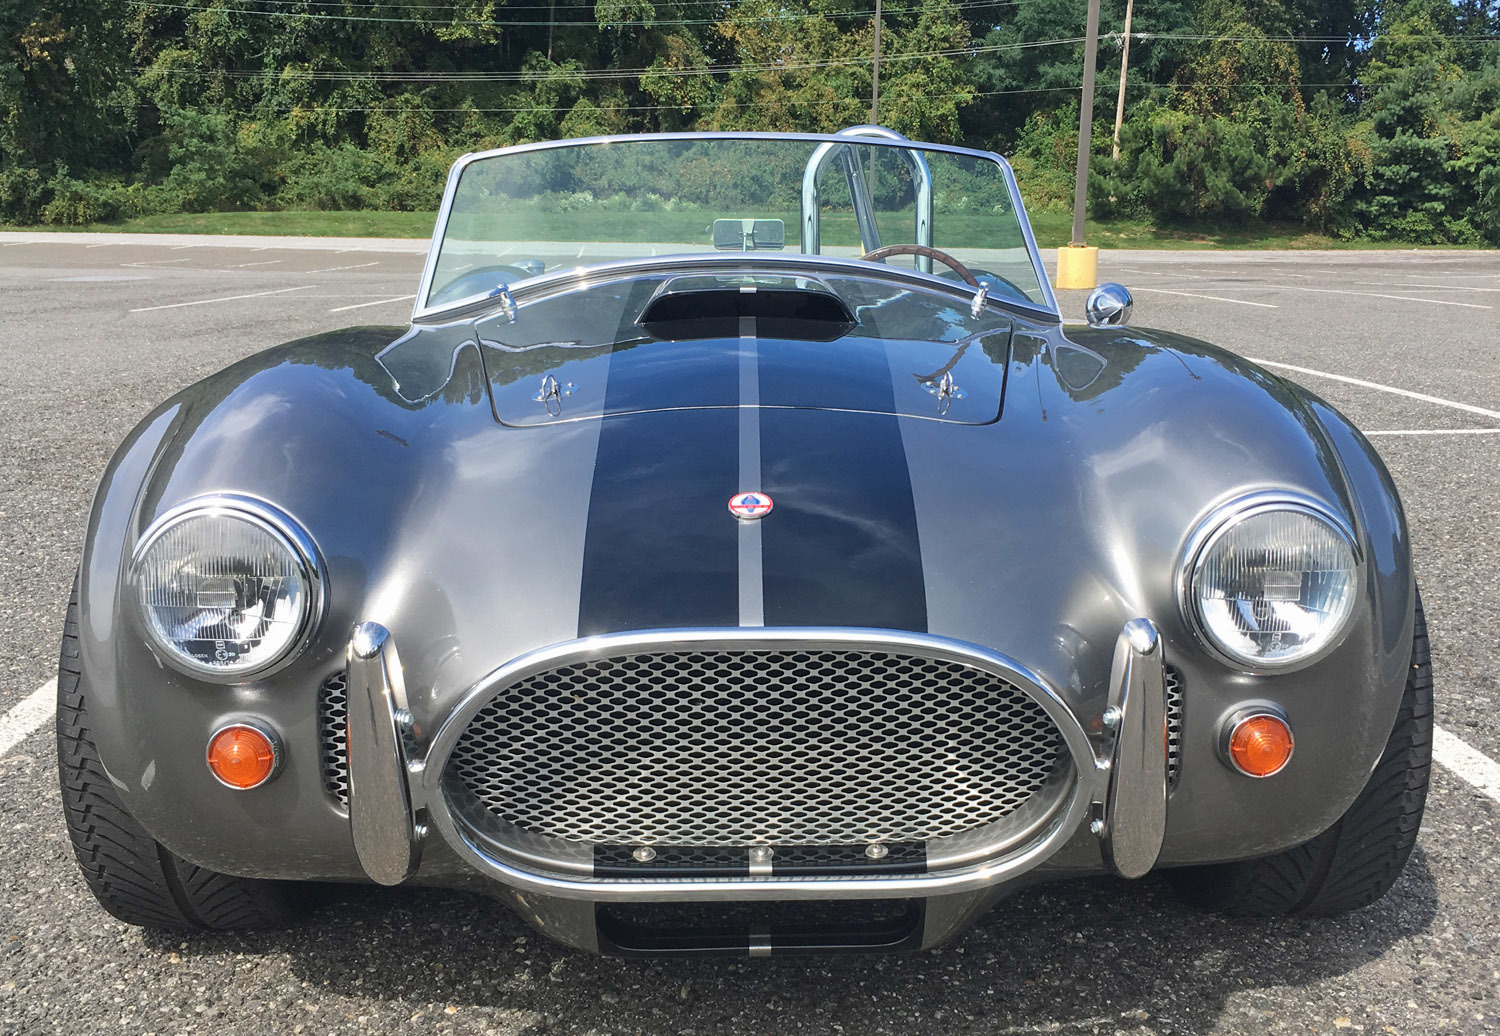 1965 Shelby Cobra : 1965 Shelby Cobra Replica By Factory Five